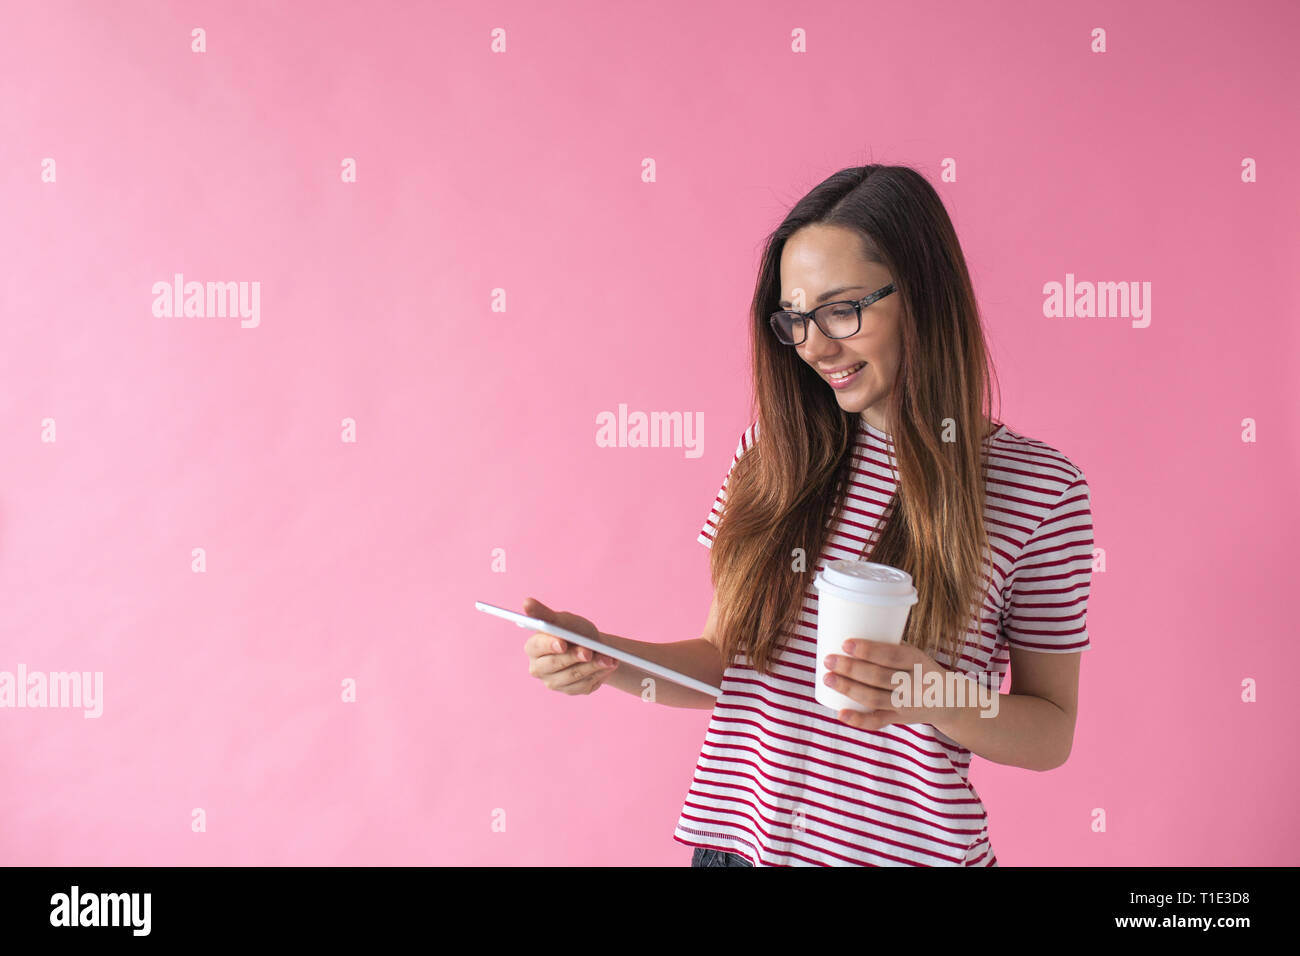 A beautiful girl uses a tablet and drinks coffee or another drink. Communication or job search online or internet entertainment during coffee break. - Stock Image